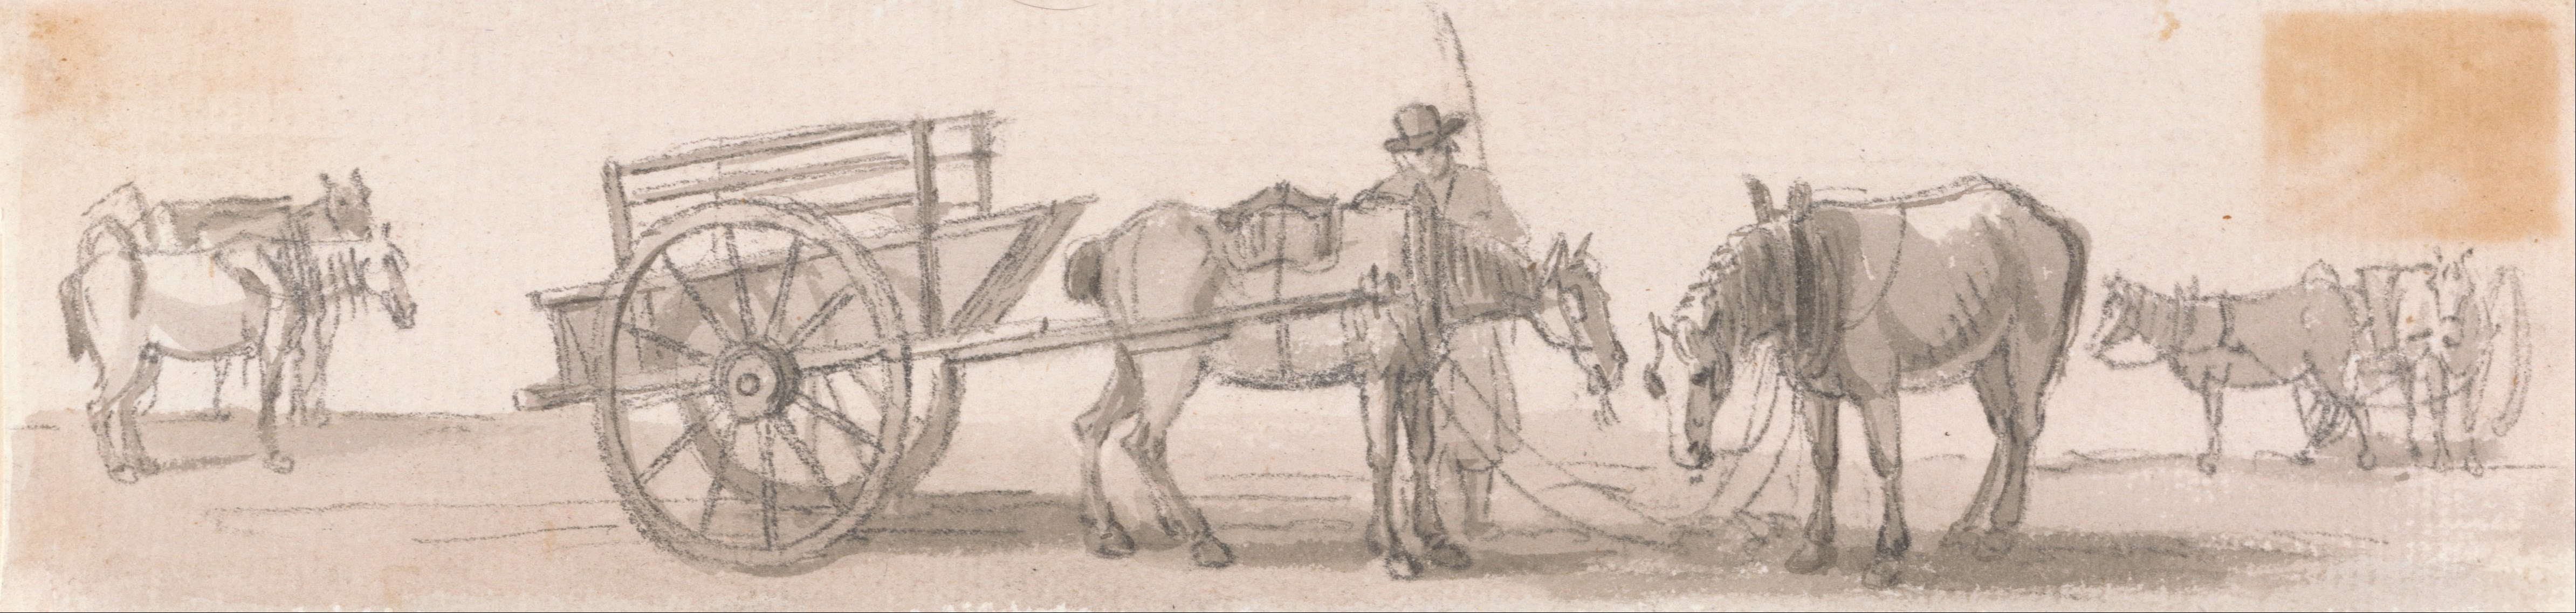 Two-wheeled Tip-cart with Horses Artist creator QS:P170,Q266637 Details of artist on Google Art Project Title Two-wheeled Tip-cart with Horses label QS:Len